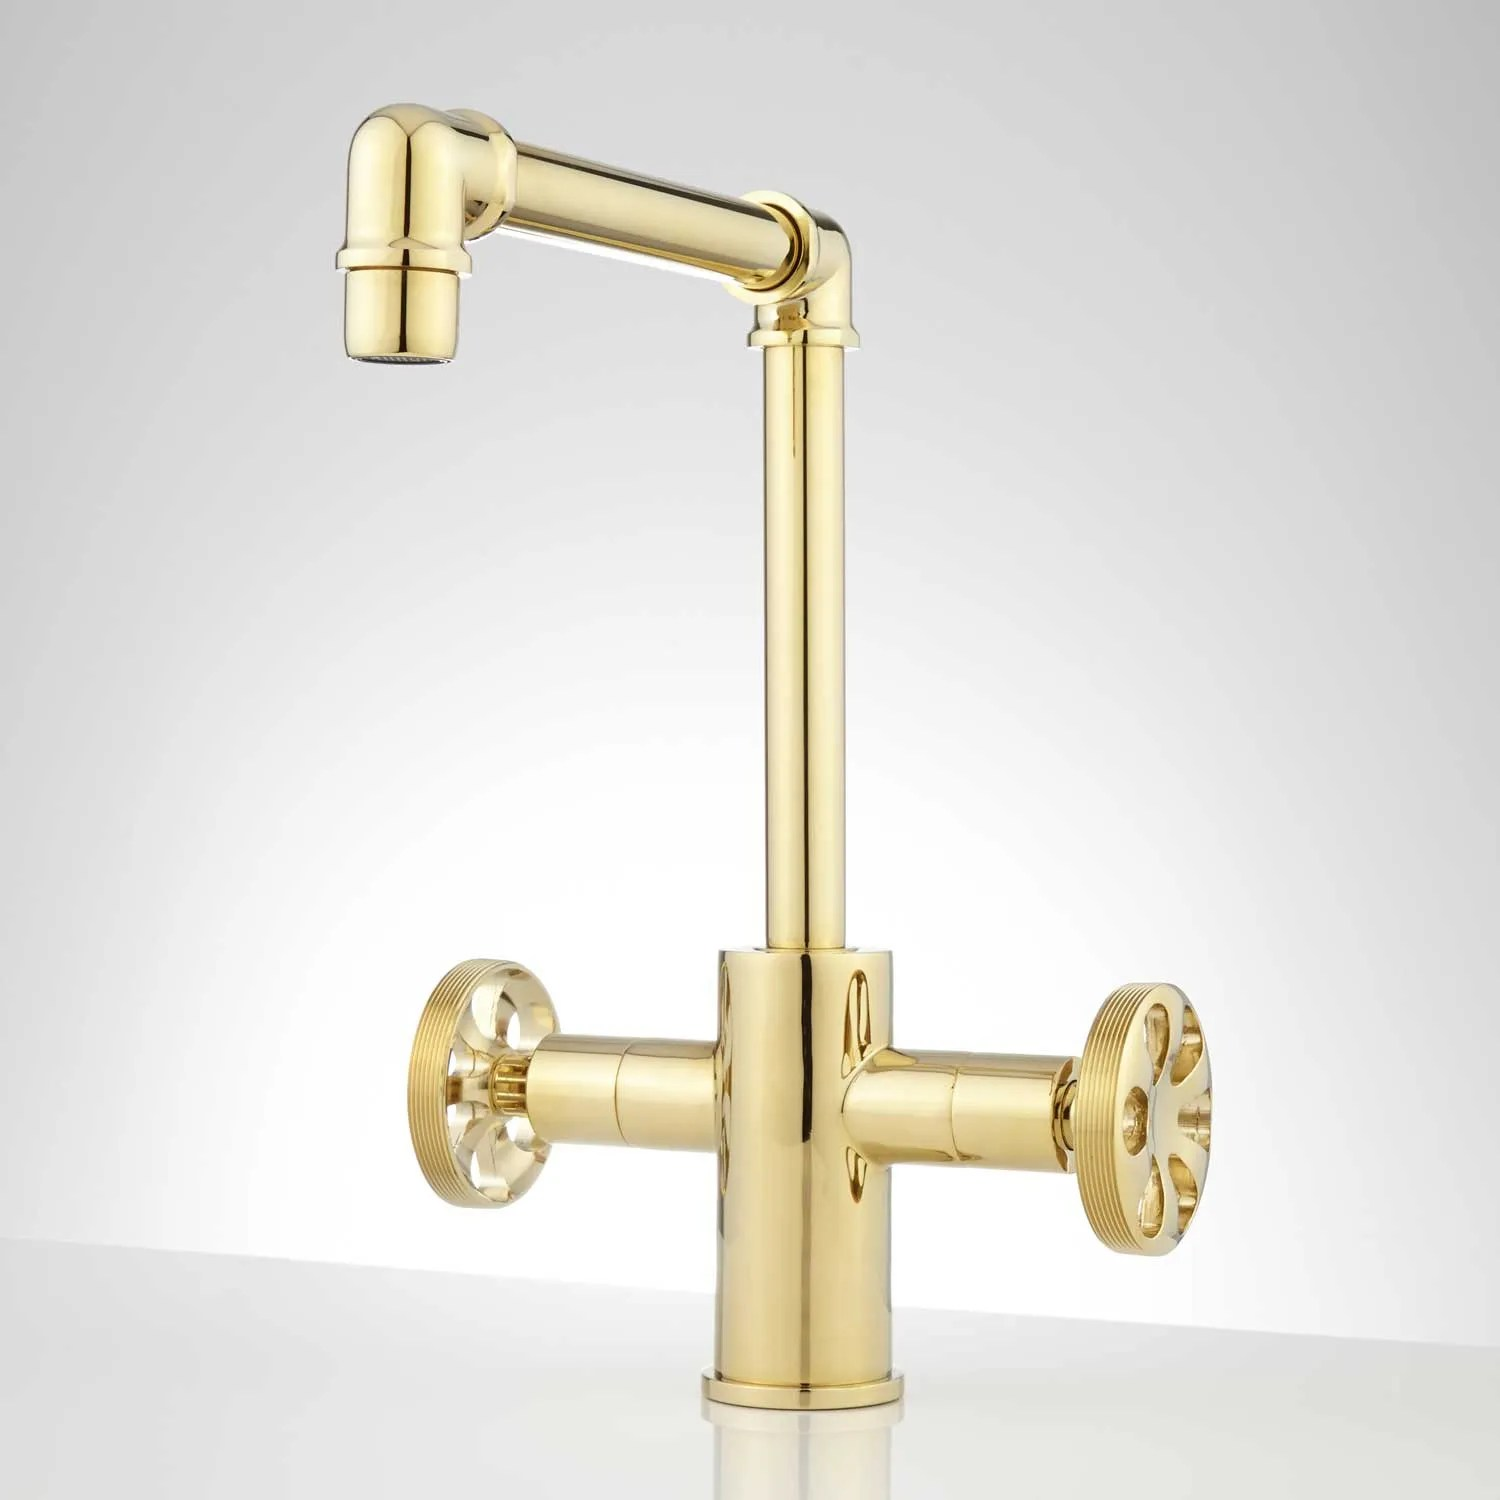 edison single hole dual-handle brass bathroom faucet with pop-up